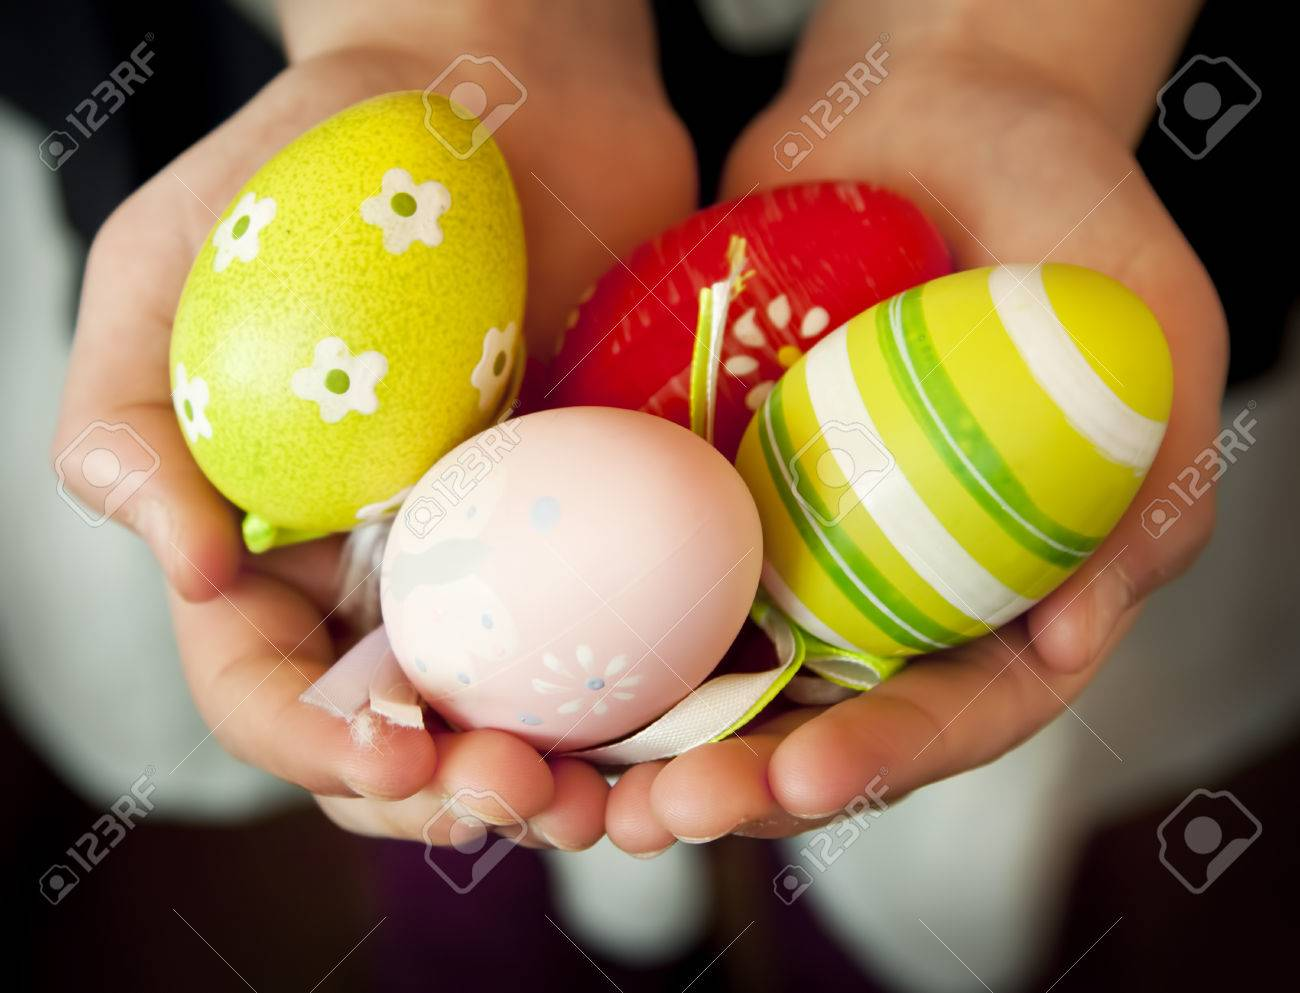 Child hands holding colorful easter eggs protection hands symbol child hands holding colorful easter eggs protection hands symbol stock photo 26600044 biocorpaavc